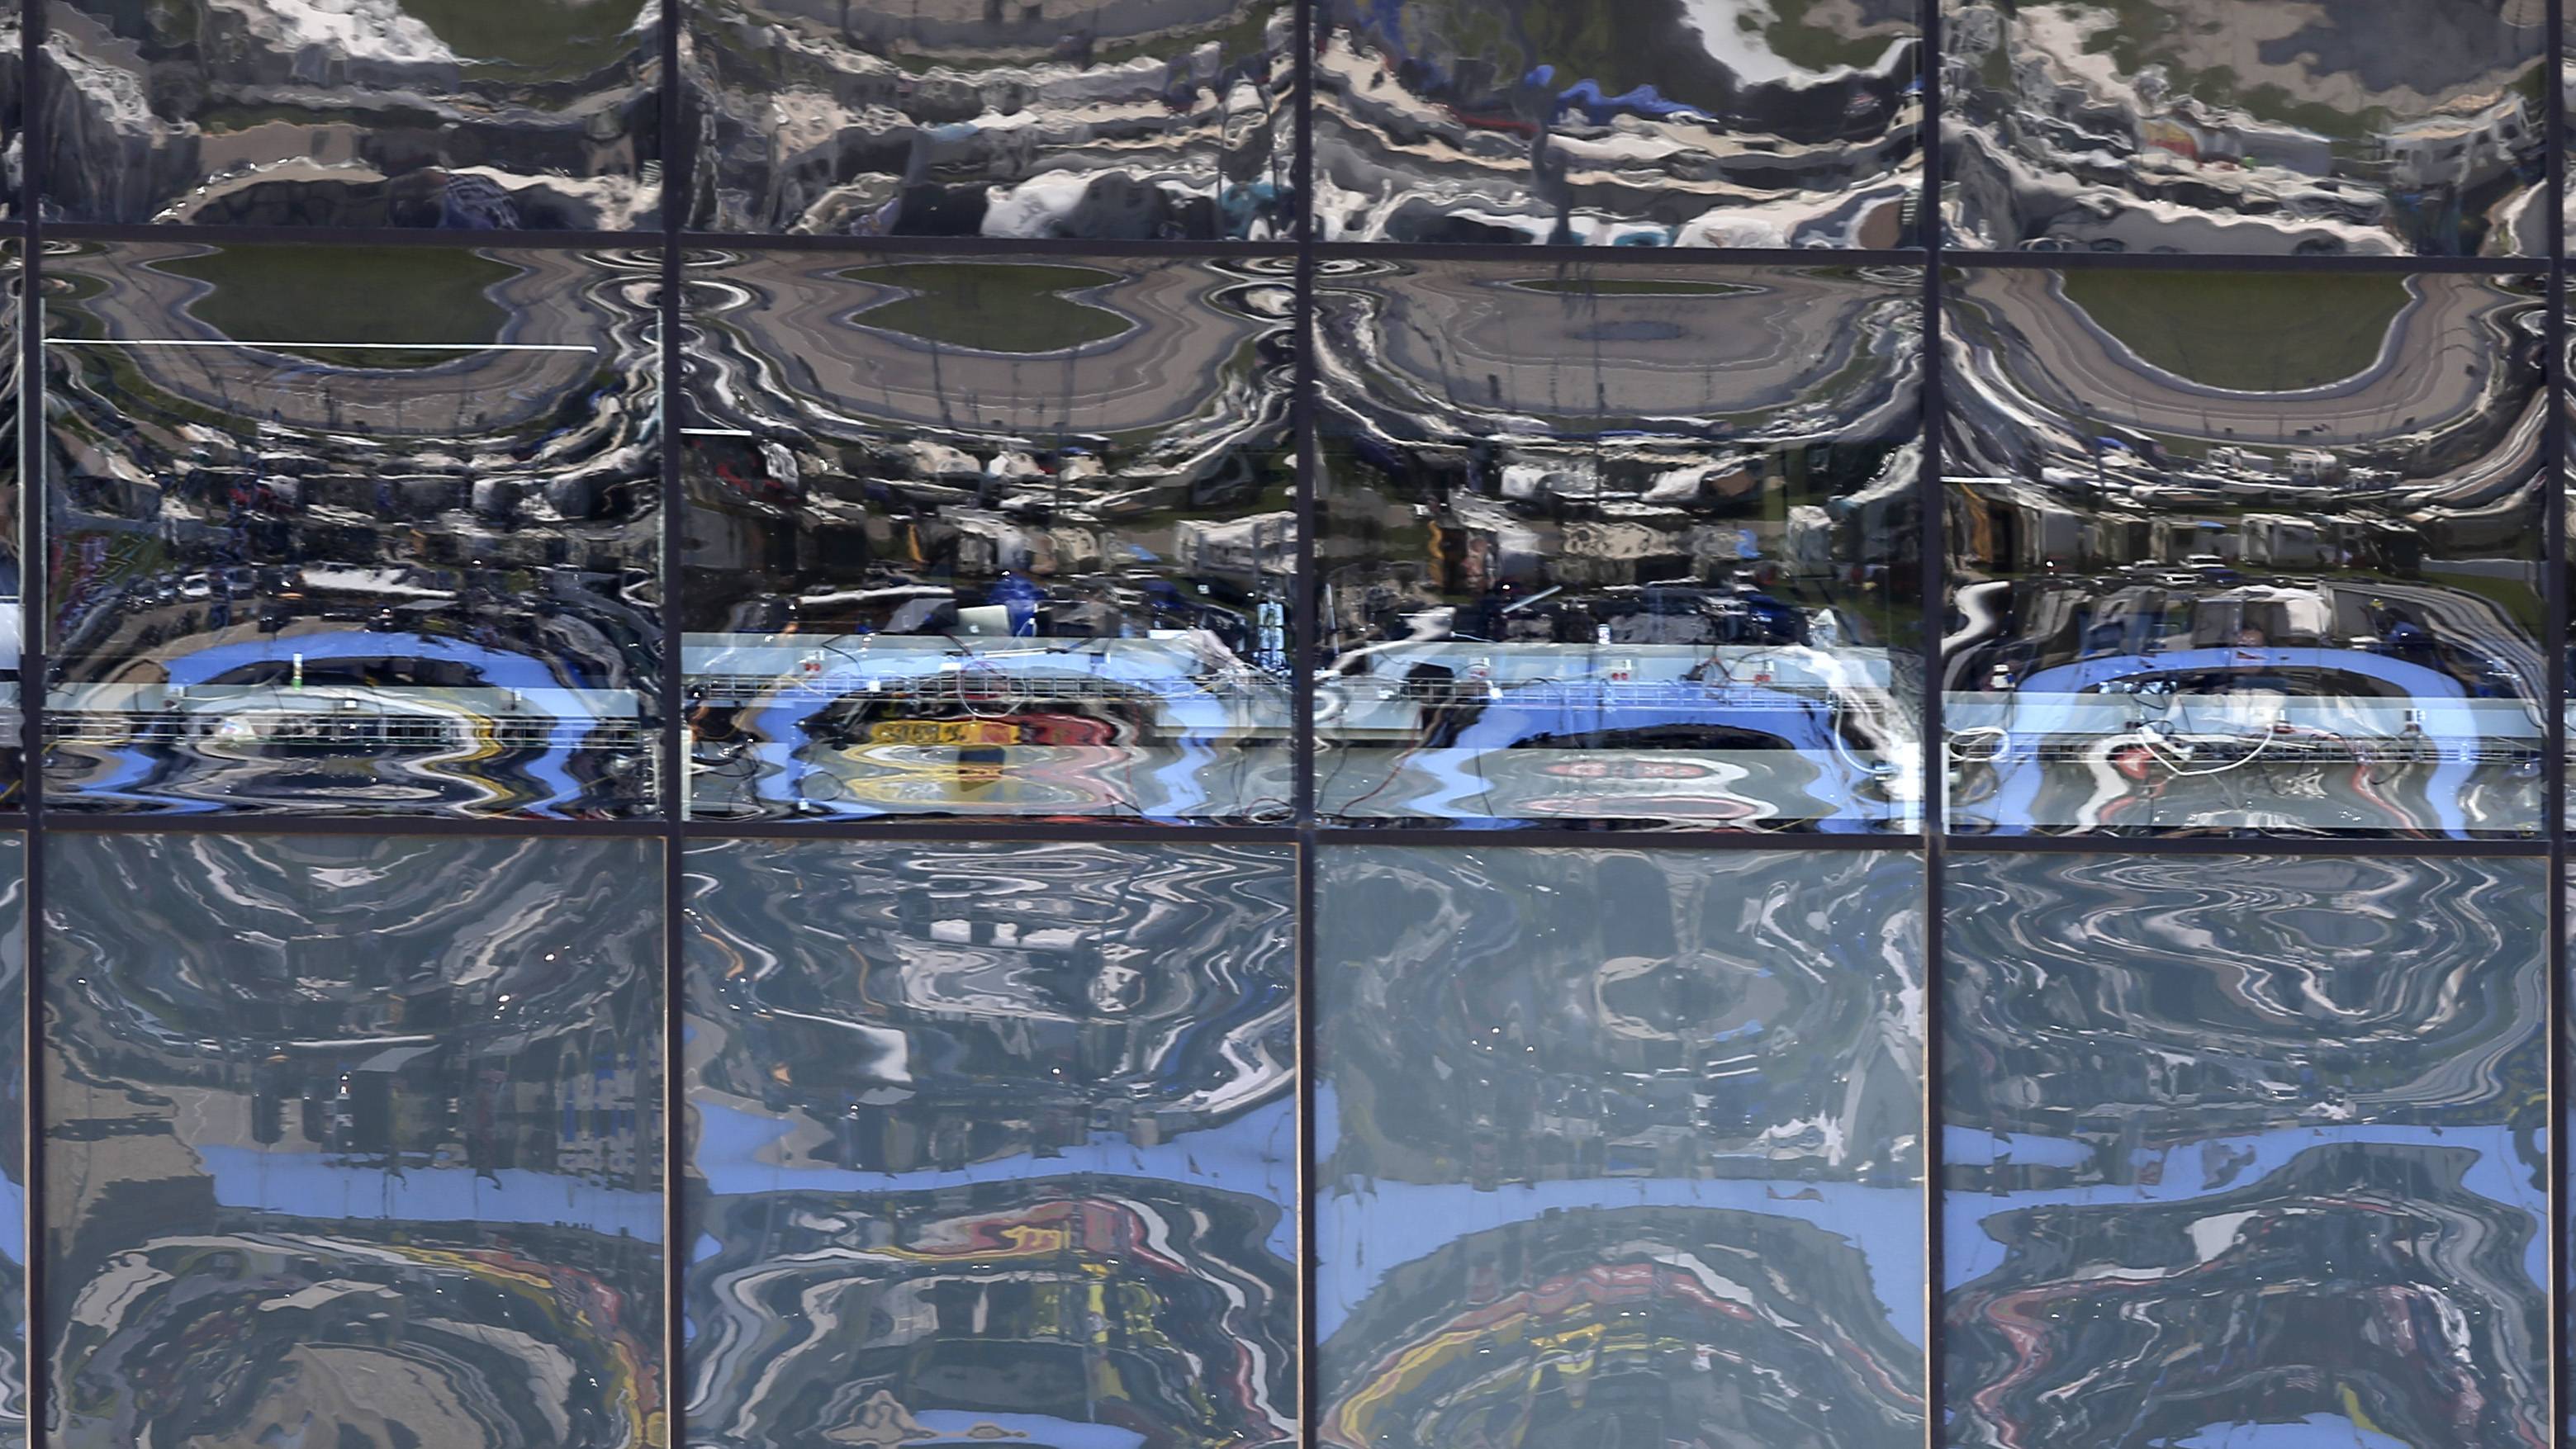 Scenes of the race track are reflected in the press box windows during NASCAR auto racing Sprint Cup Series practice at Kansas Speedway in Kansas City, Kan., Friday, May 6, 2016. (AP Photo/Orlin Wagner)